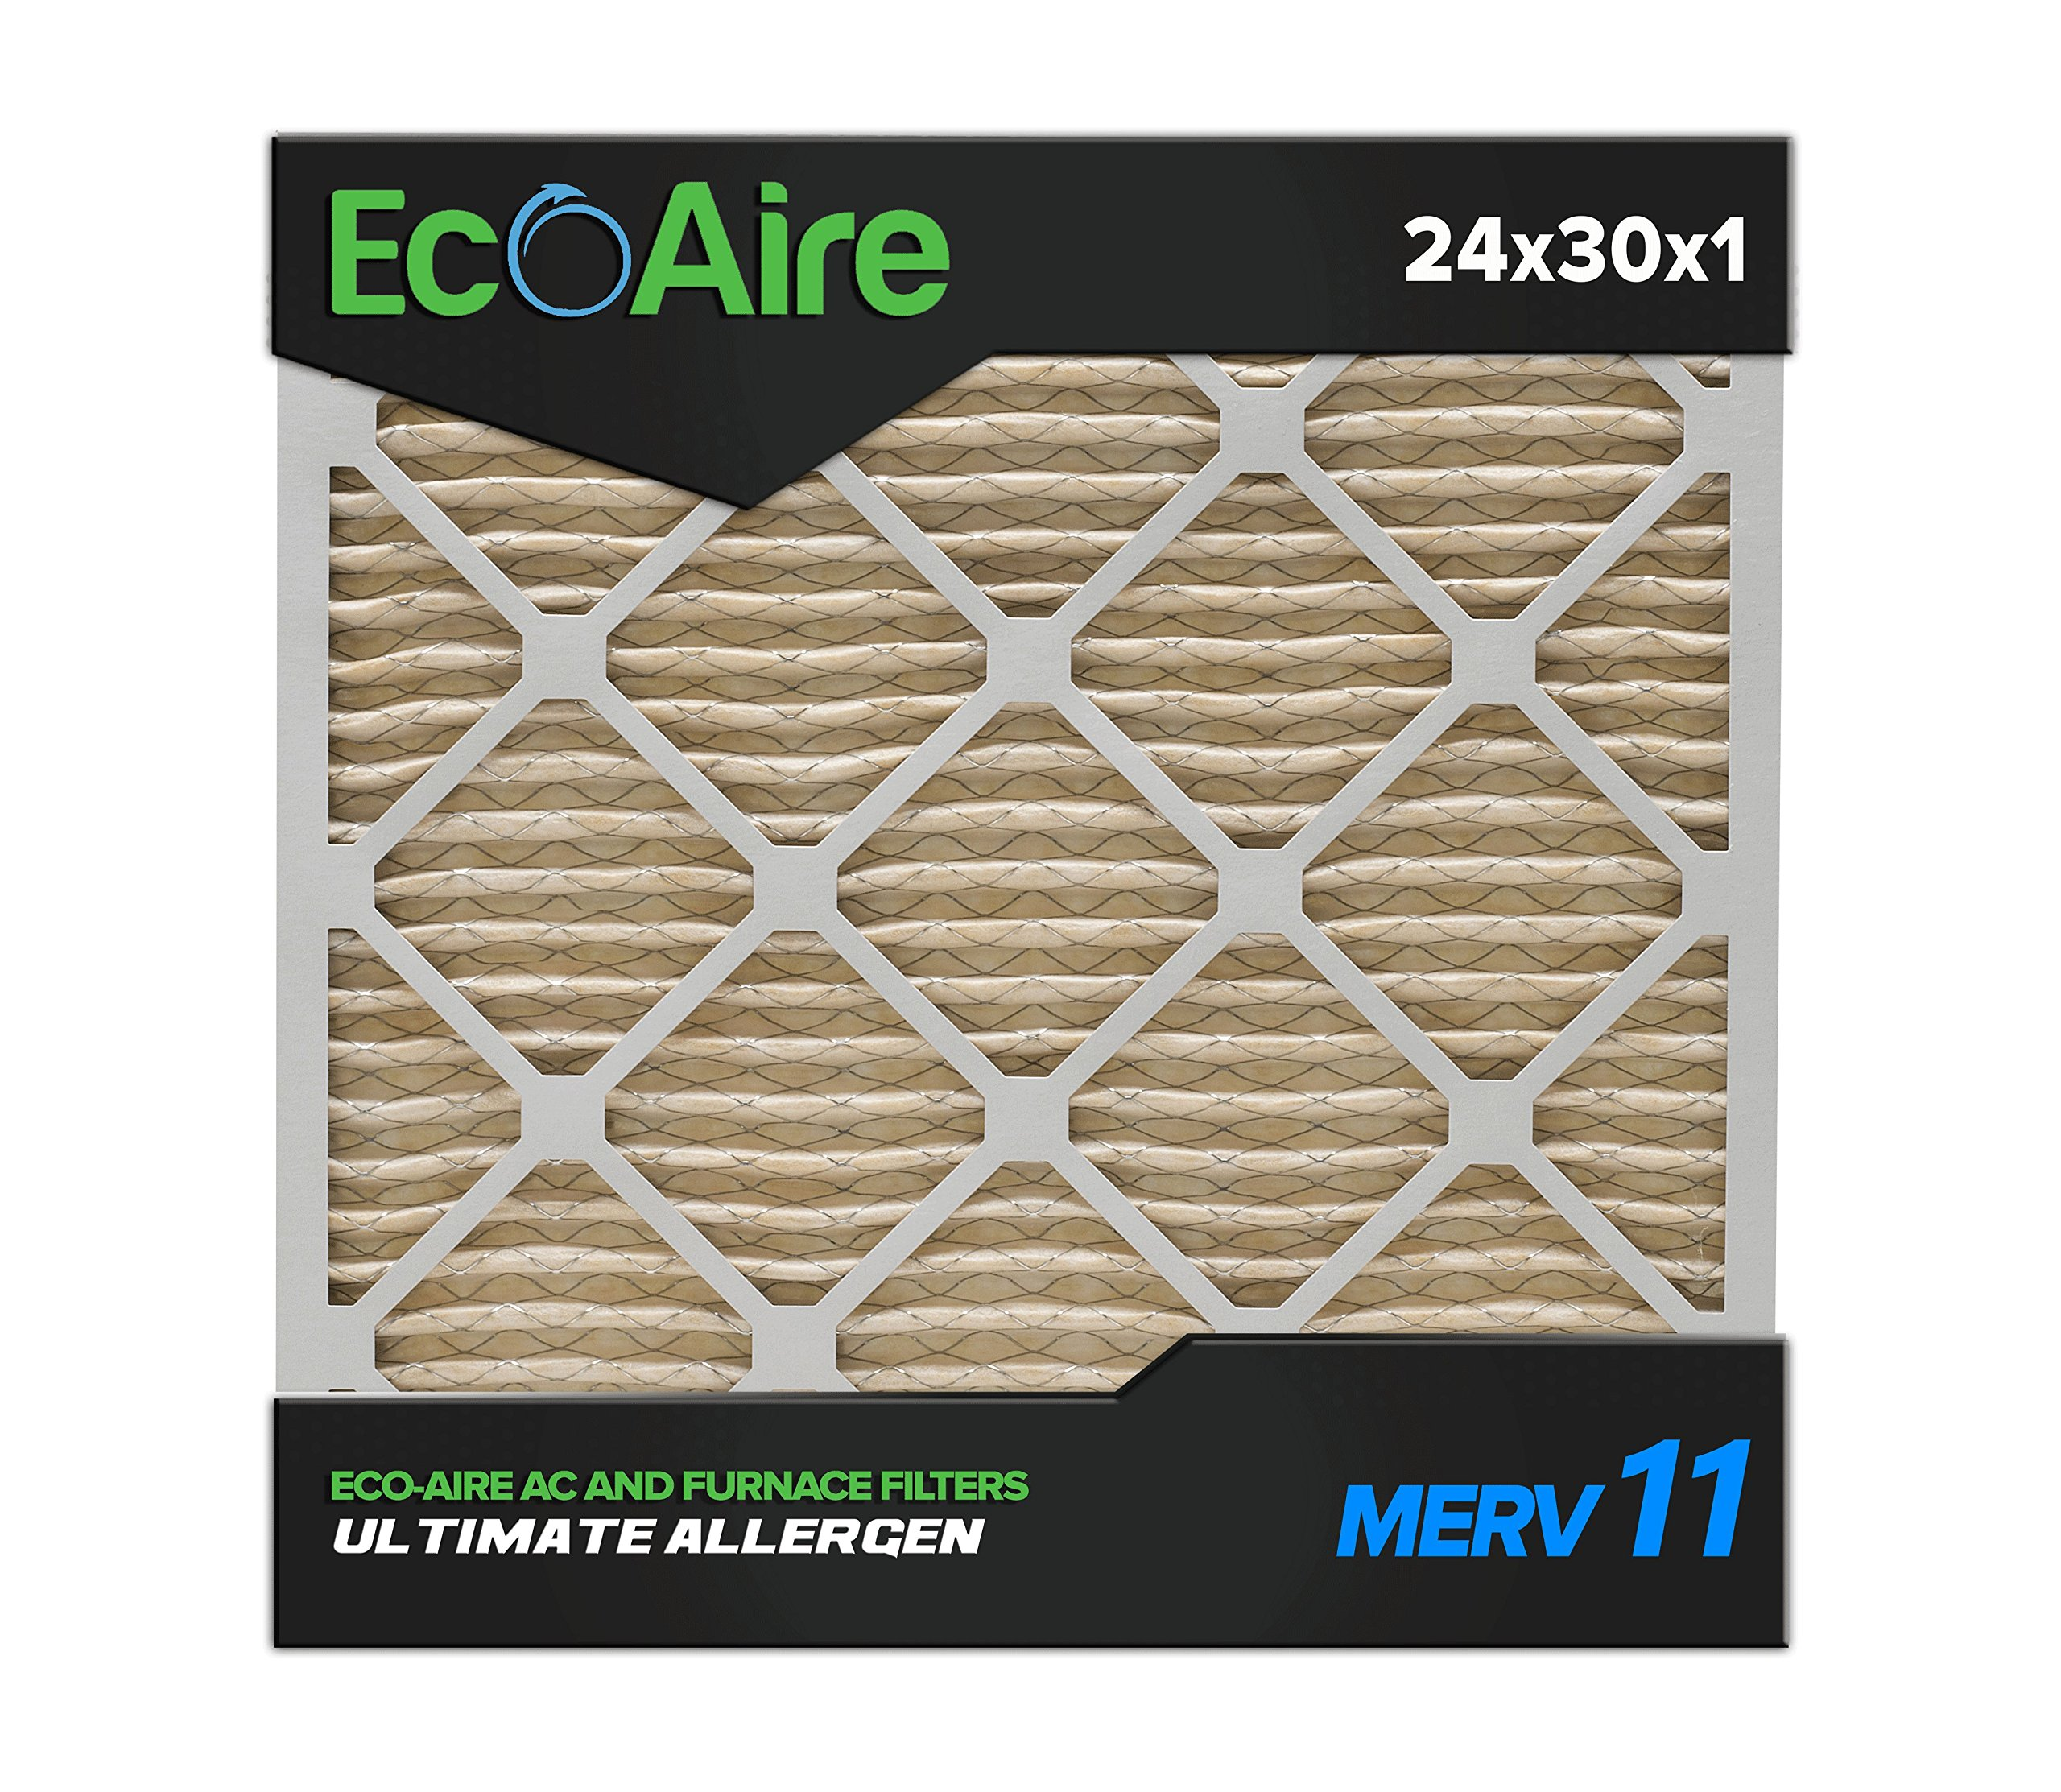 Eco-Aire 24x30x1 MERV 11, Pleated Air Filter, 24x30x1, Box of 6, Made in the USA